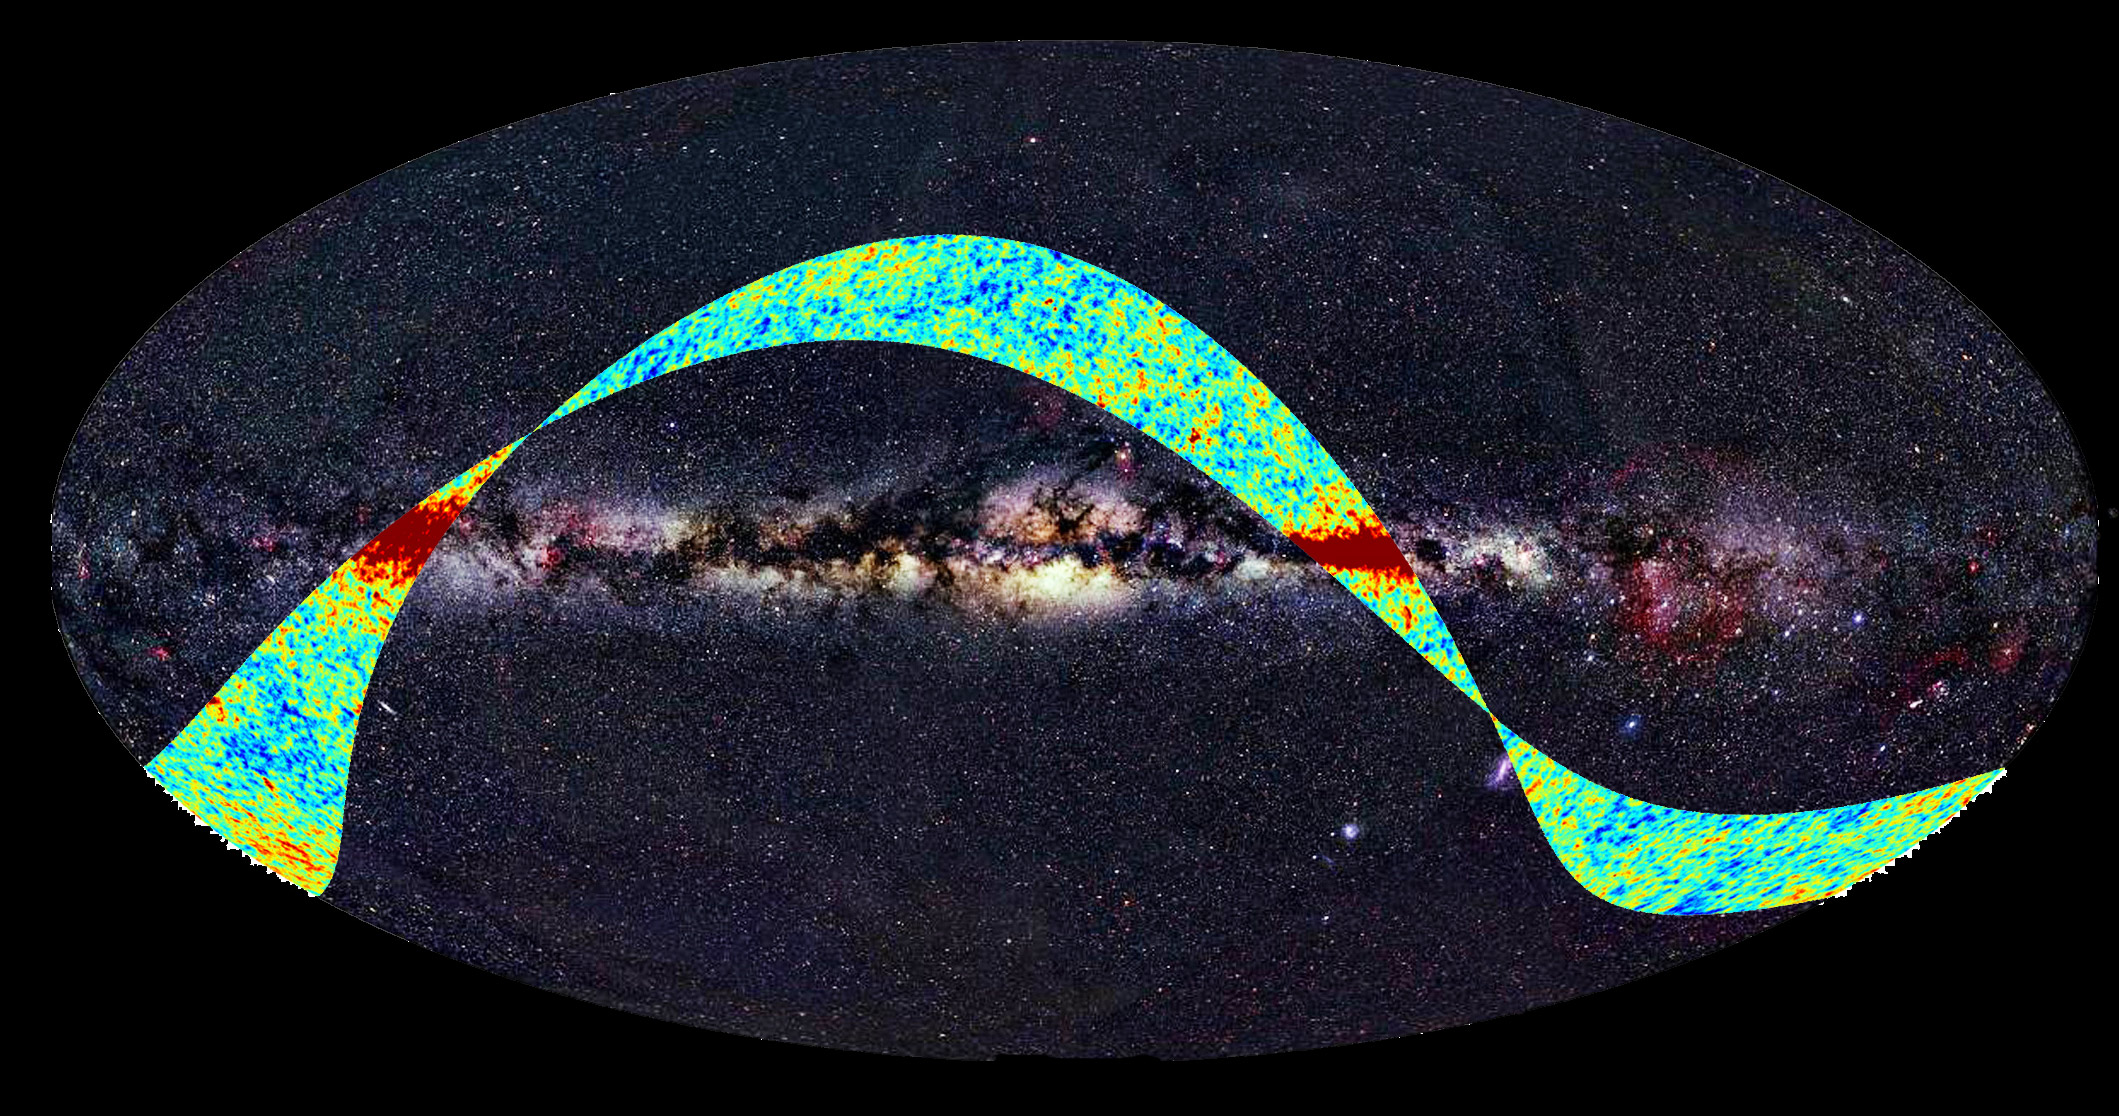 A map of the sky at optical wavelengths shows a prominent horizontal band which is the light shining from our own Milky Way. The superimposed strip shows the area of the sky mapped by Planck during the First Light Survey.  The color scale indicates the magnitude of the deviations of the temperature of the Cosmic Microwave Background from its average value, as measured by Planck at a frequency close to the peak of the CMB spectrum (red is hotter and blue is colder).  The large red strips trace radio emission from the Milky Way, whereas the small bright spots high above the galactic plane correspond to emission from the Cosmic Microwave Background itself.